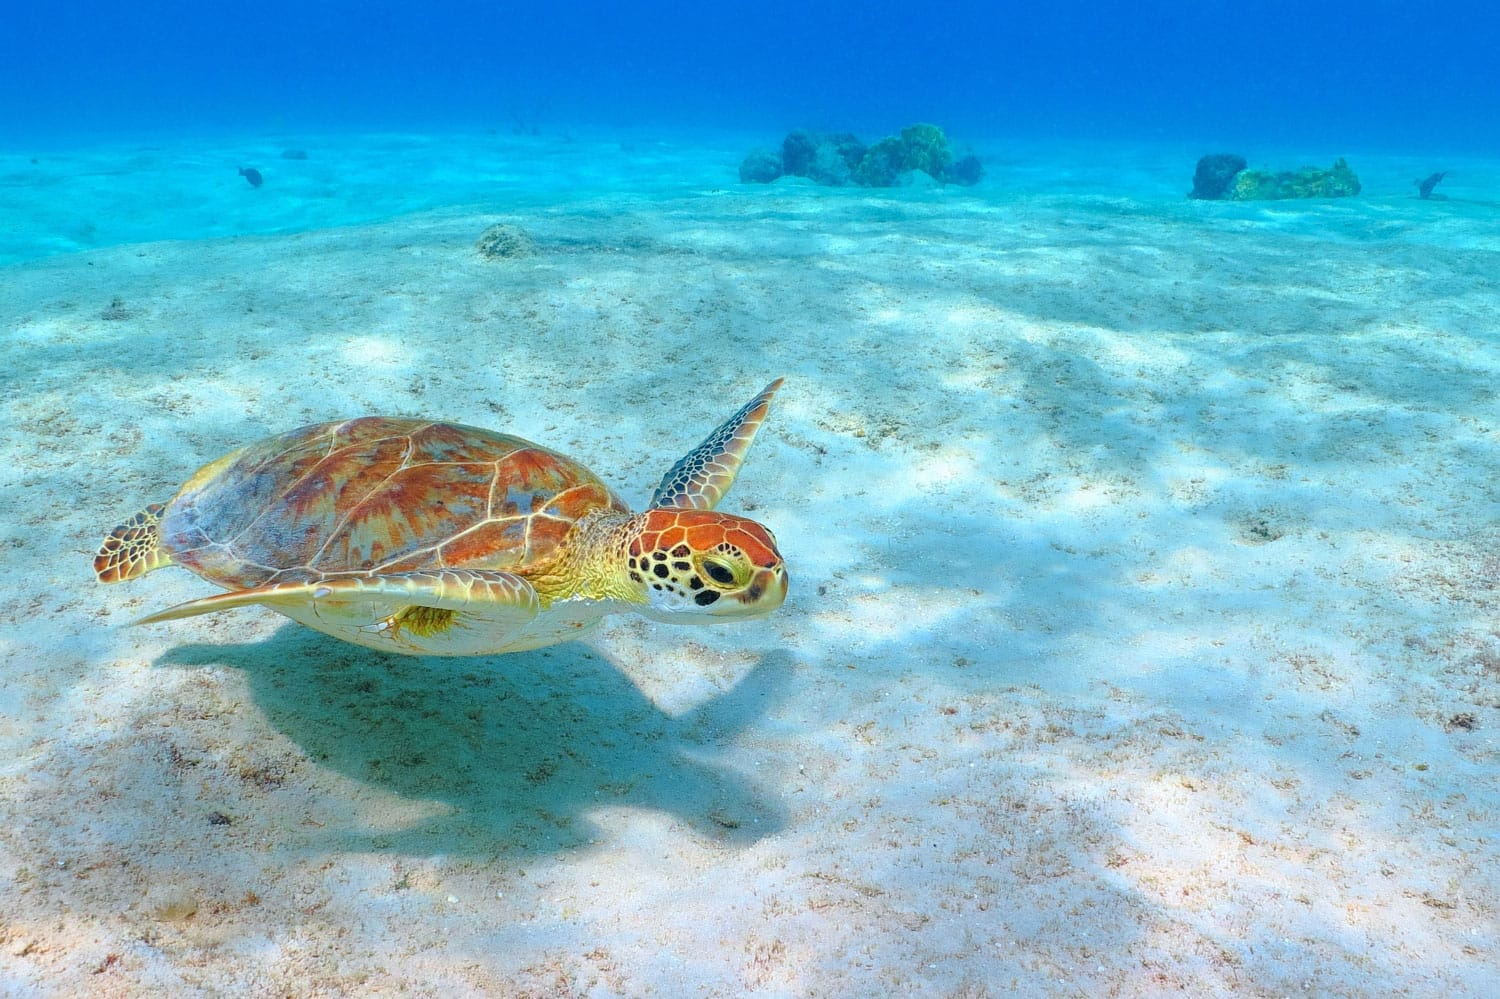 The green sea turtle (Chelonia mydas) swimming over the sandy white seabed in Akumal, Mexico